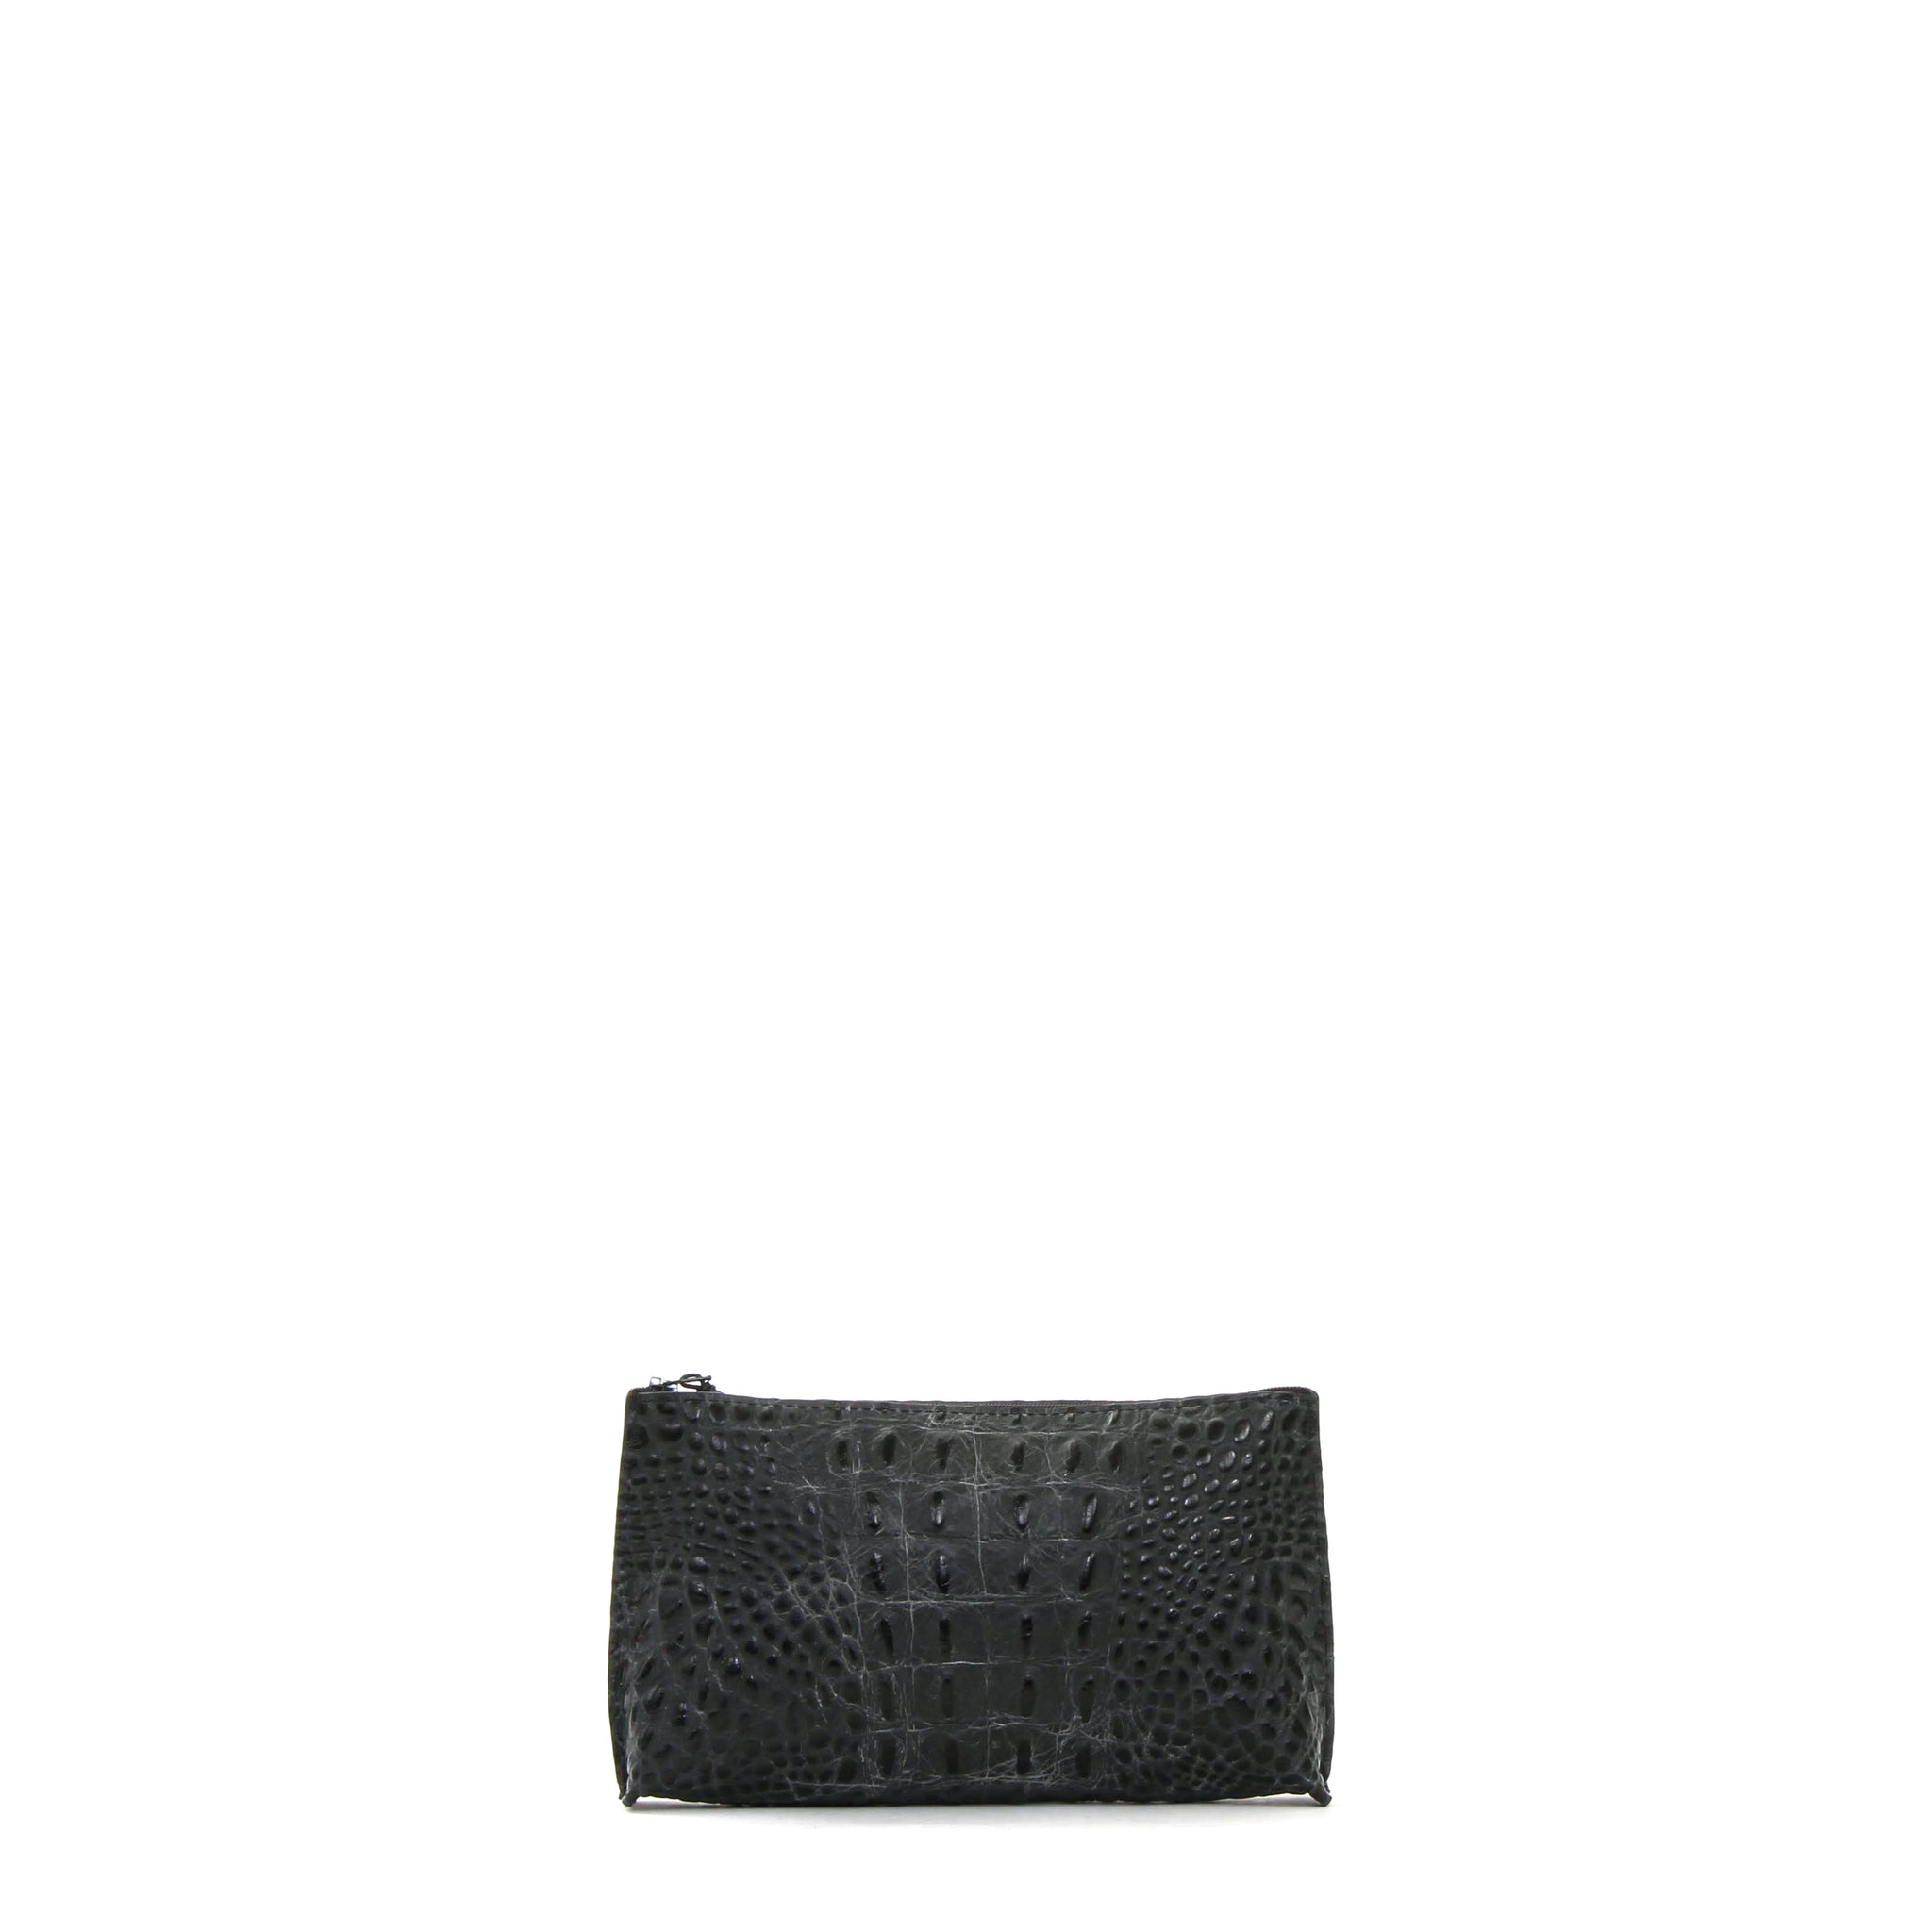 ESSENTIAL POUCH MATTE BLACK EMBOSSED CROC